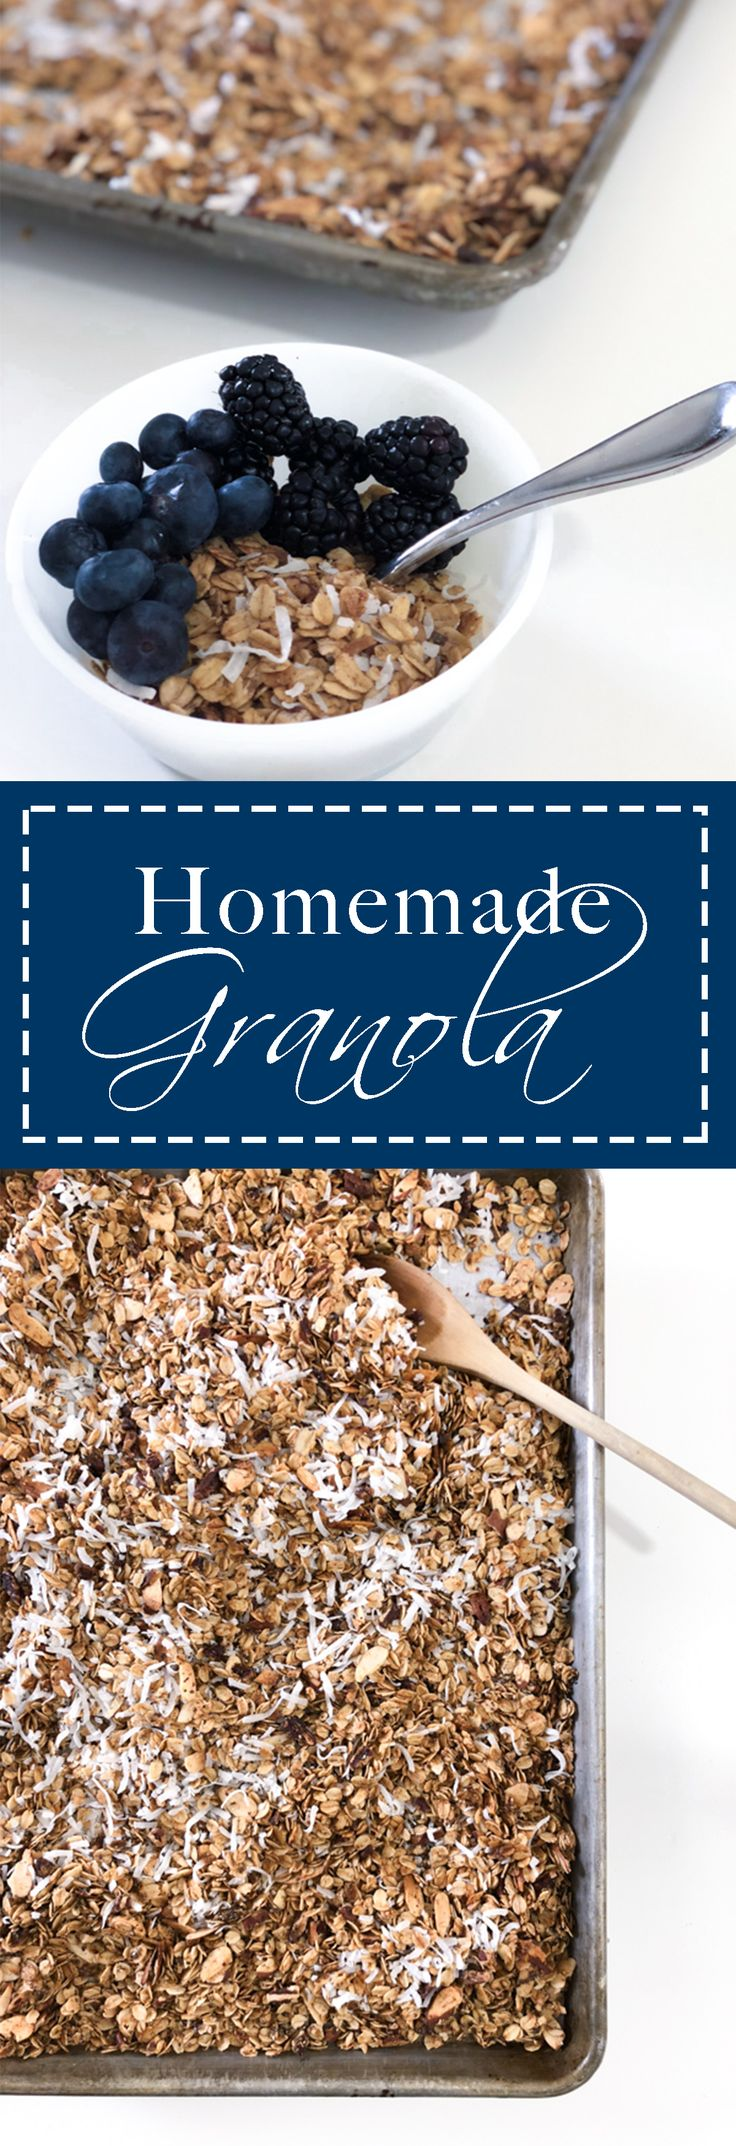 Skip the store-bought version and make this delicious homemade granola yourself! Free of refined sugars and oils, packed with healthy fats and nutrients. You won't be sorry and will be begging for more!